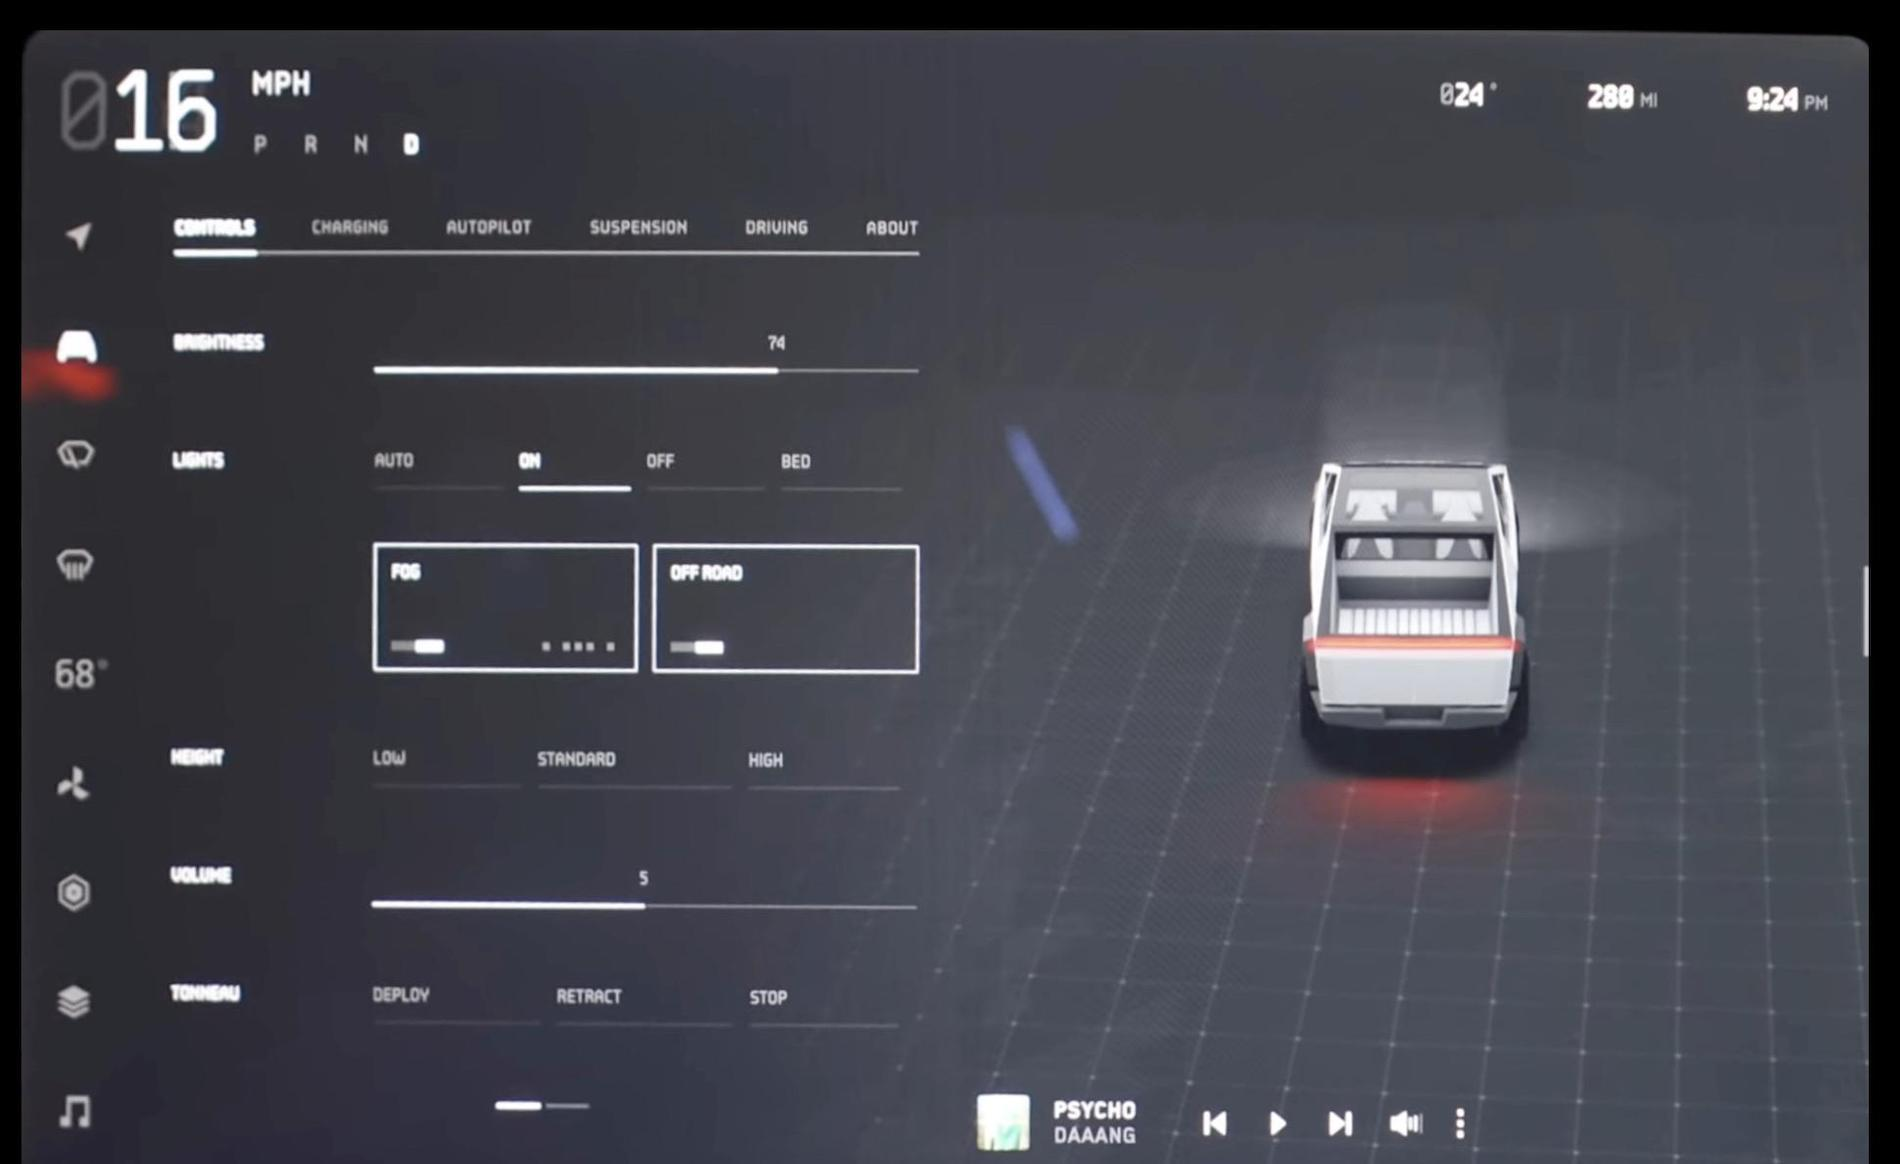 Clear look at Cybertruck touchscreen display UI showing ...